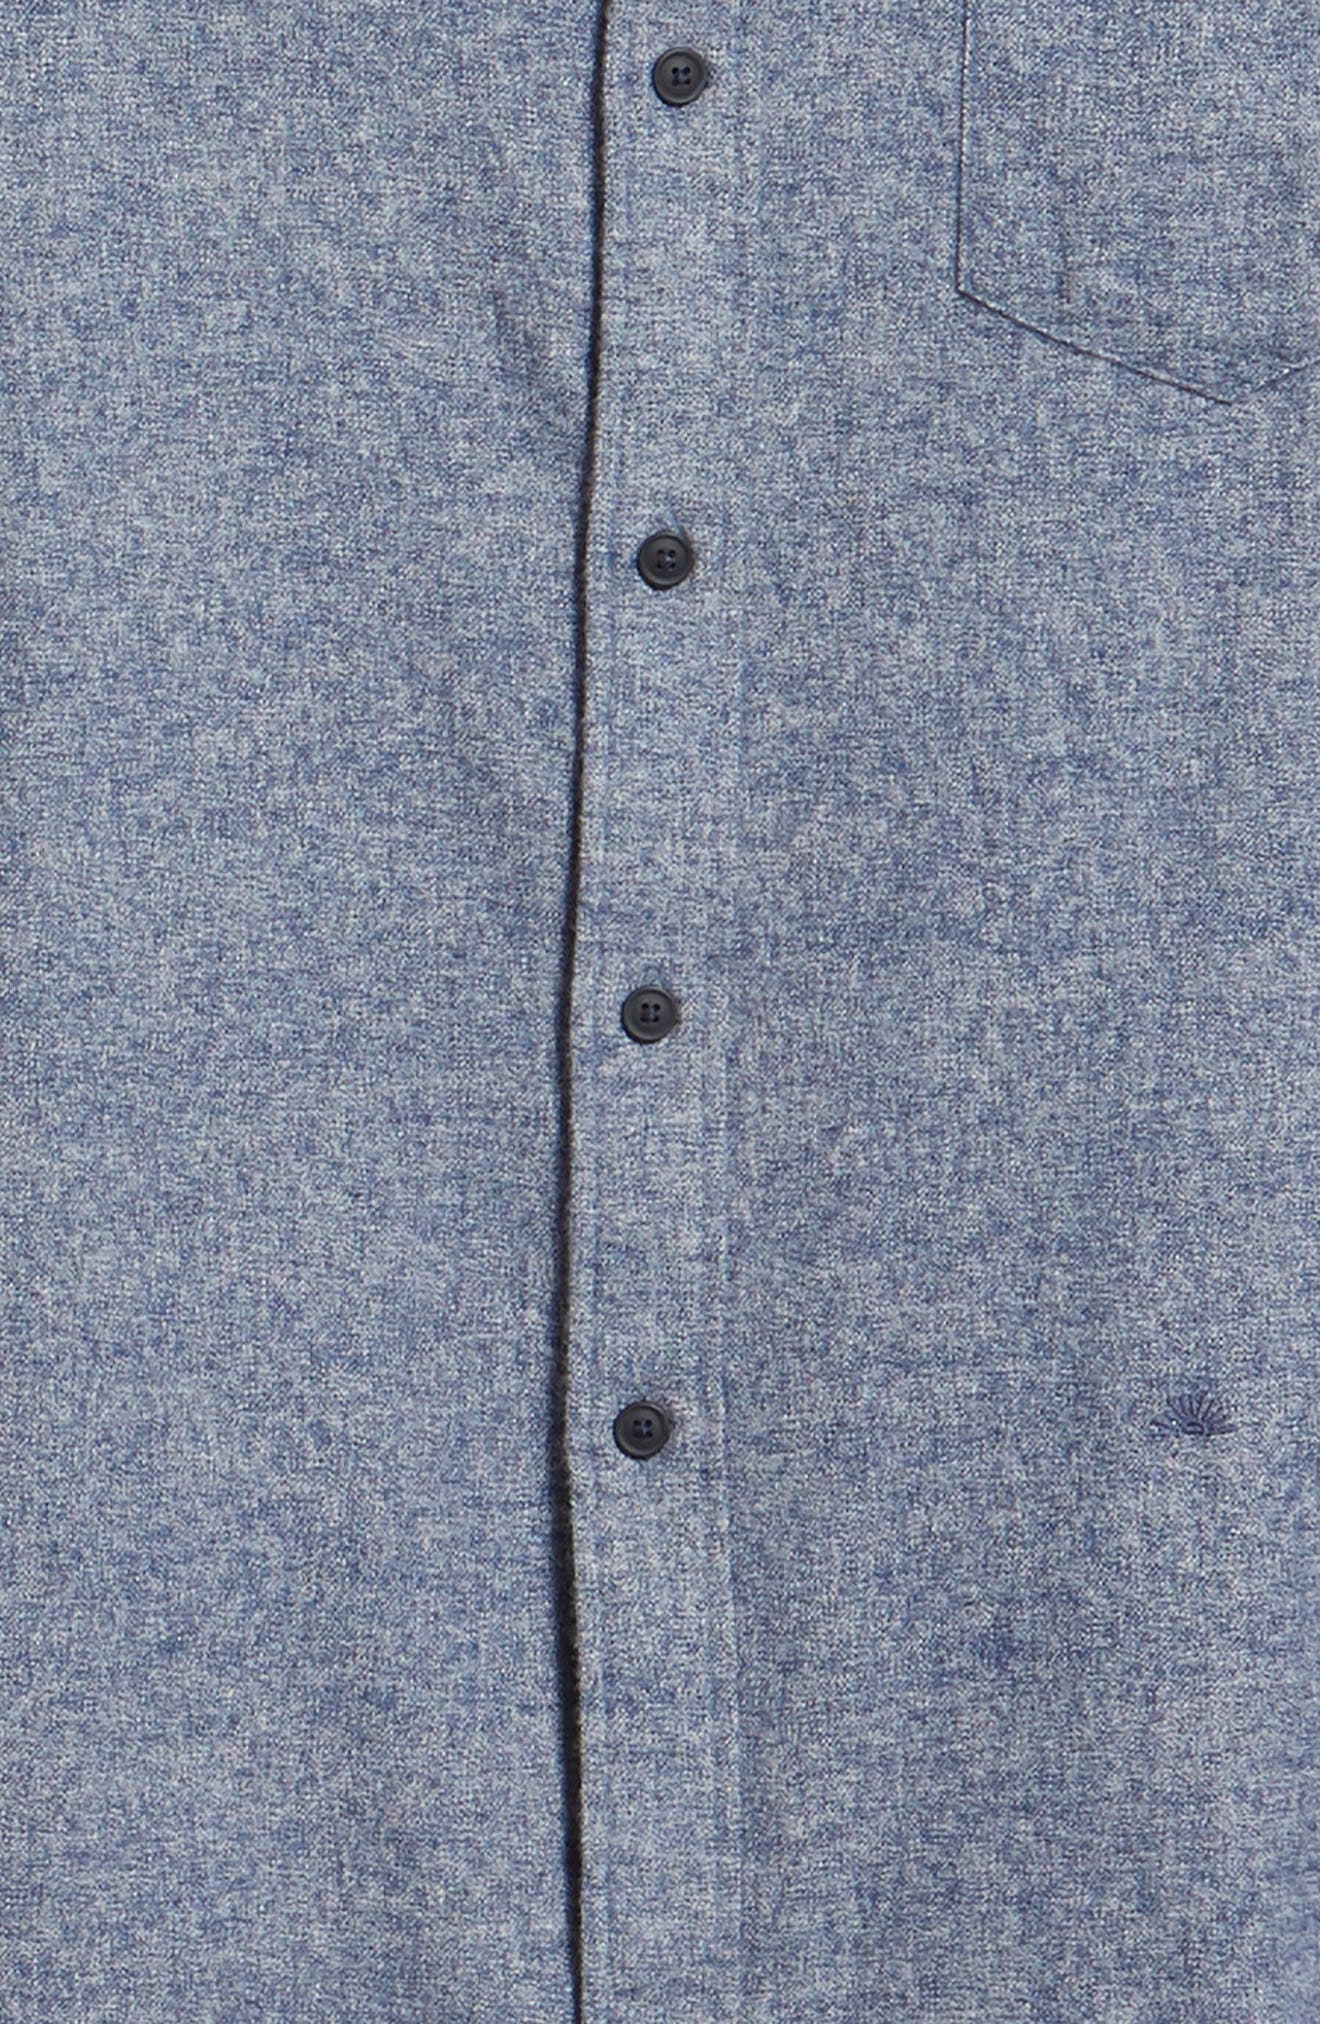 Levi's<sup>®</sup> Made & Crafted Standard Regular Fit Twill Shirt,                             Alternate thumbnail 6, color,                             400